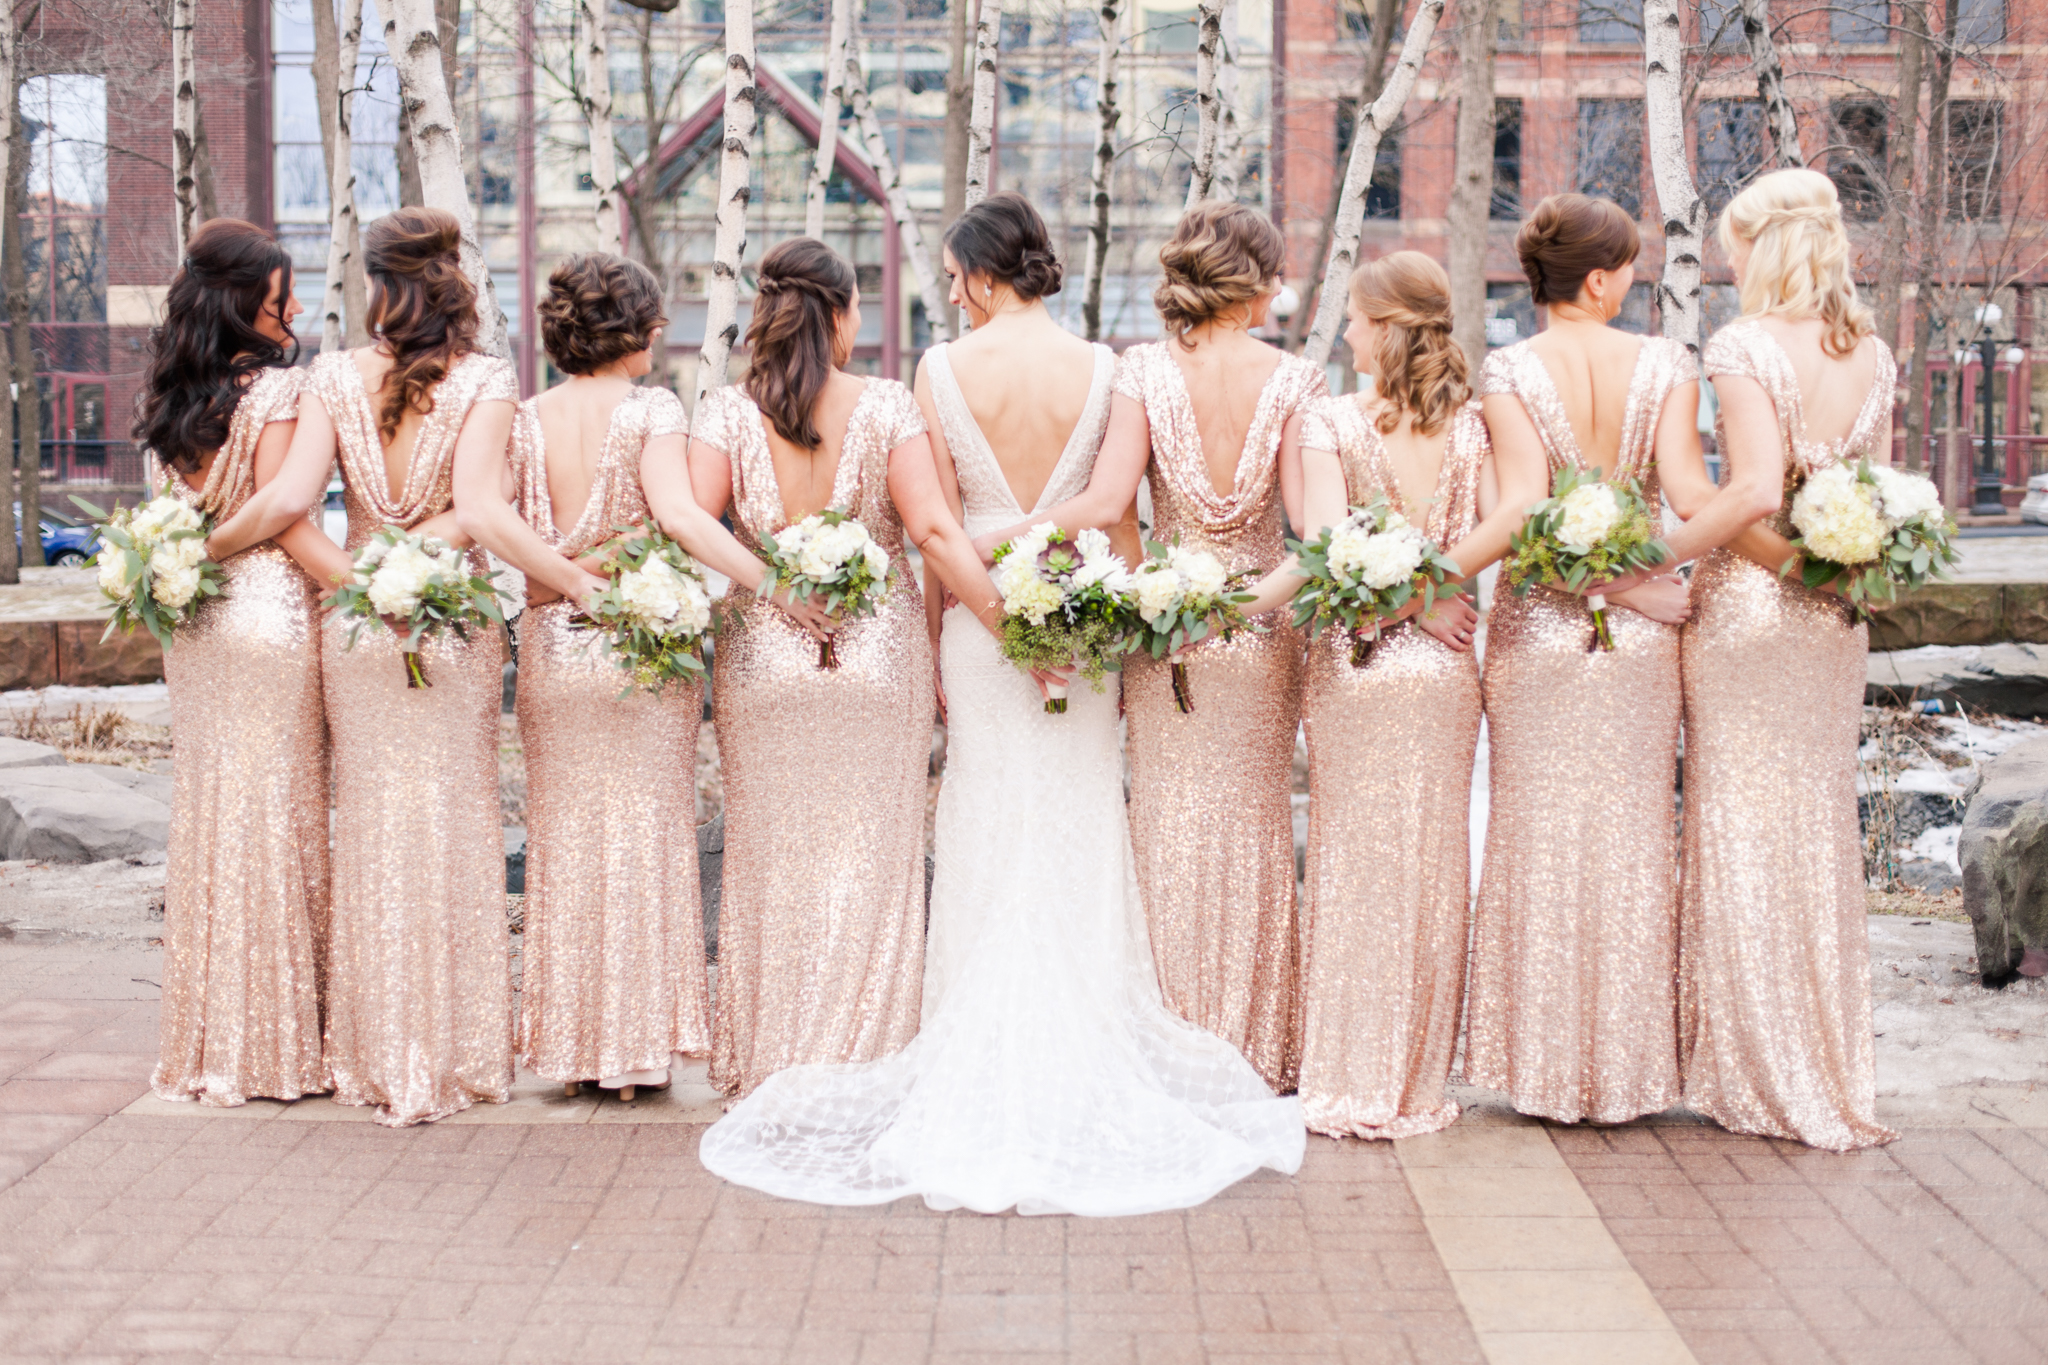 blush sequin bridesmaids dresses with scoop back neck and succulent bouquets  | Sixpence Events & Planning | Jessa Anderson Photography | winter wedding